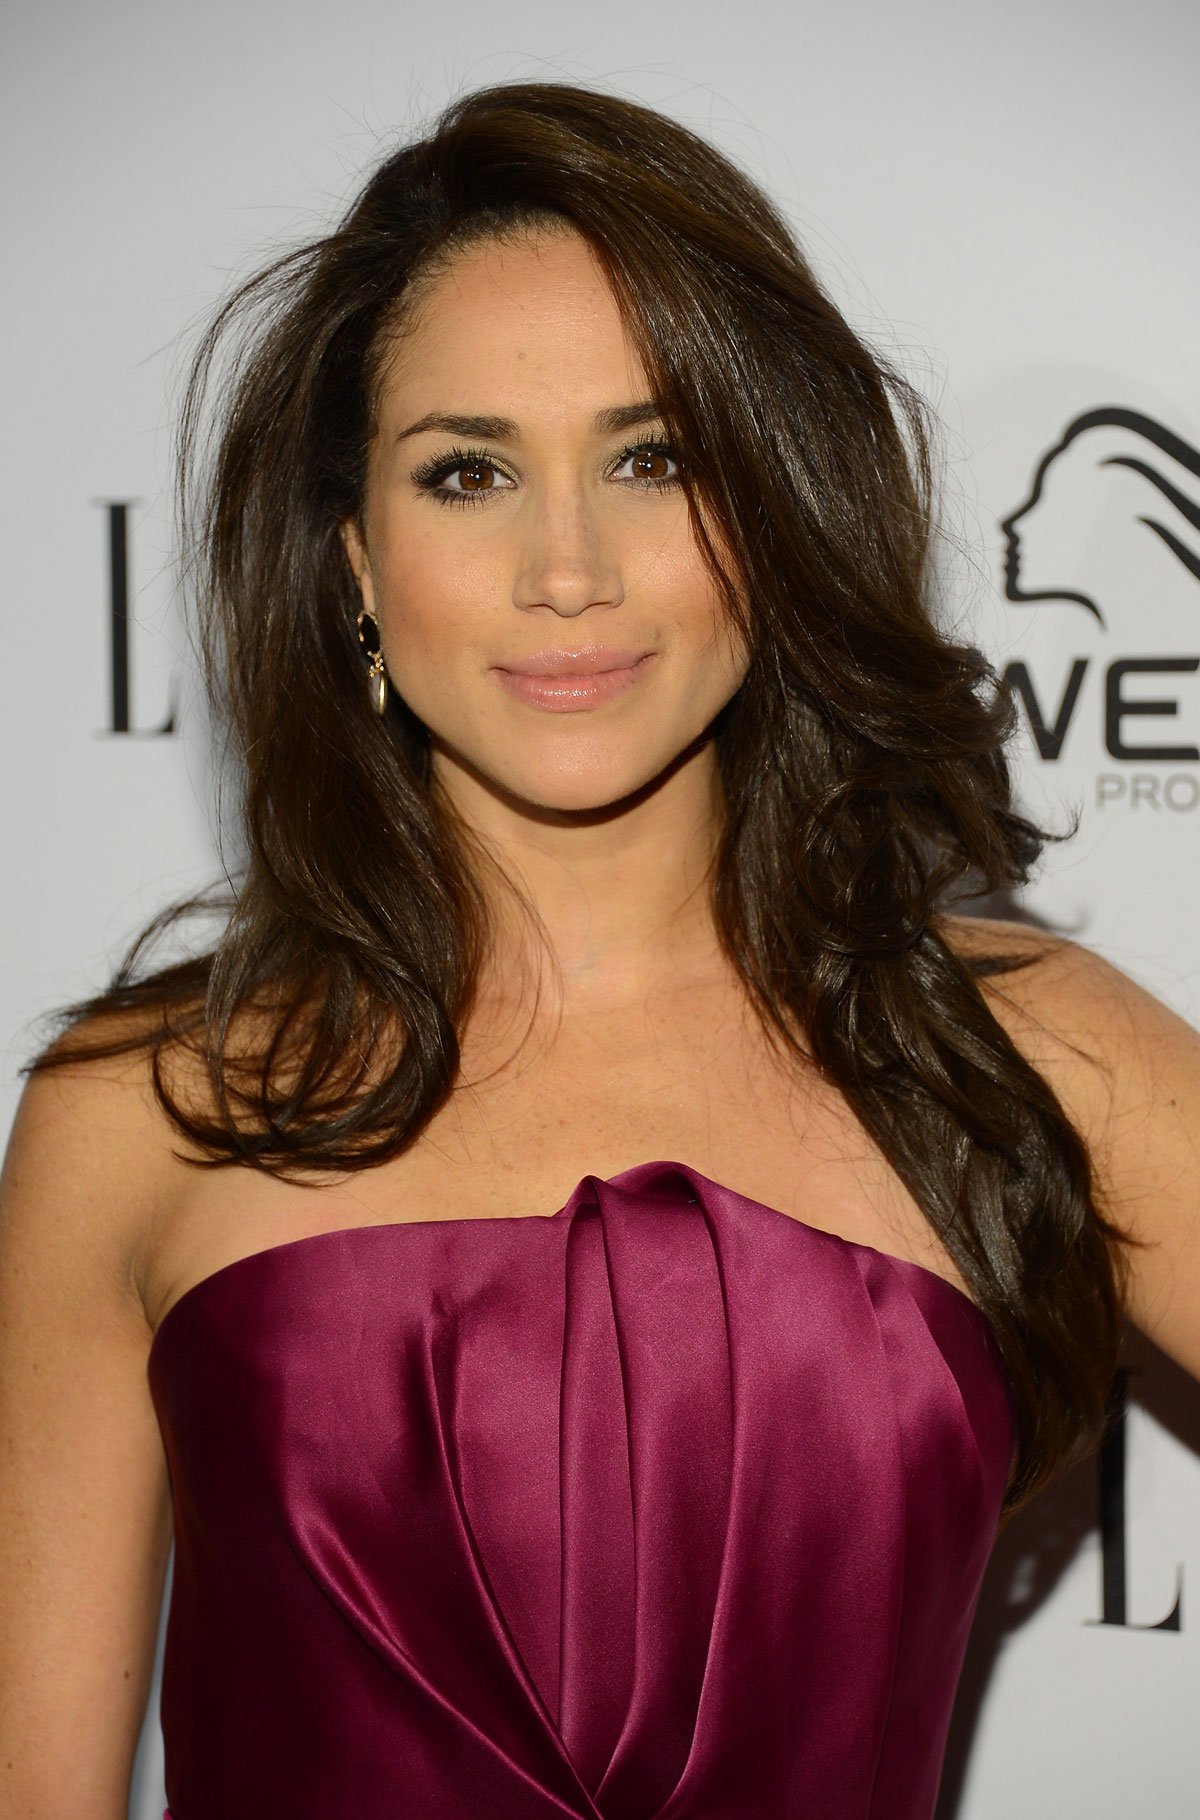 MEGHAN MARKLE at ELLE's Women in Television Celebration in Hollywood